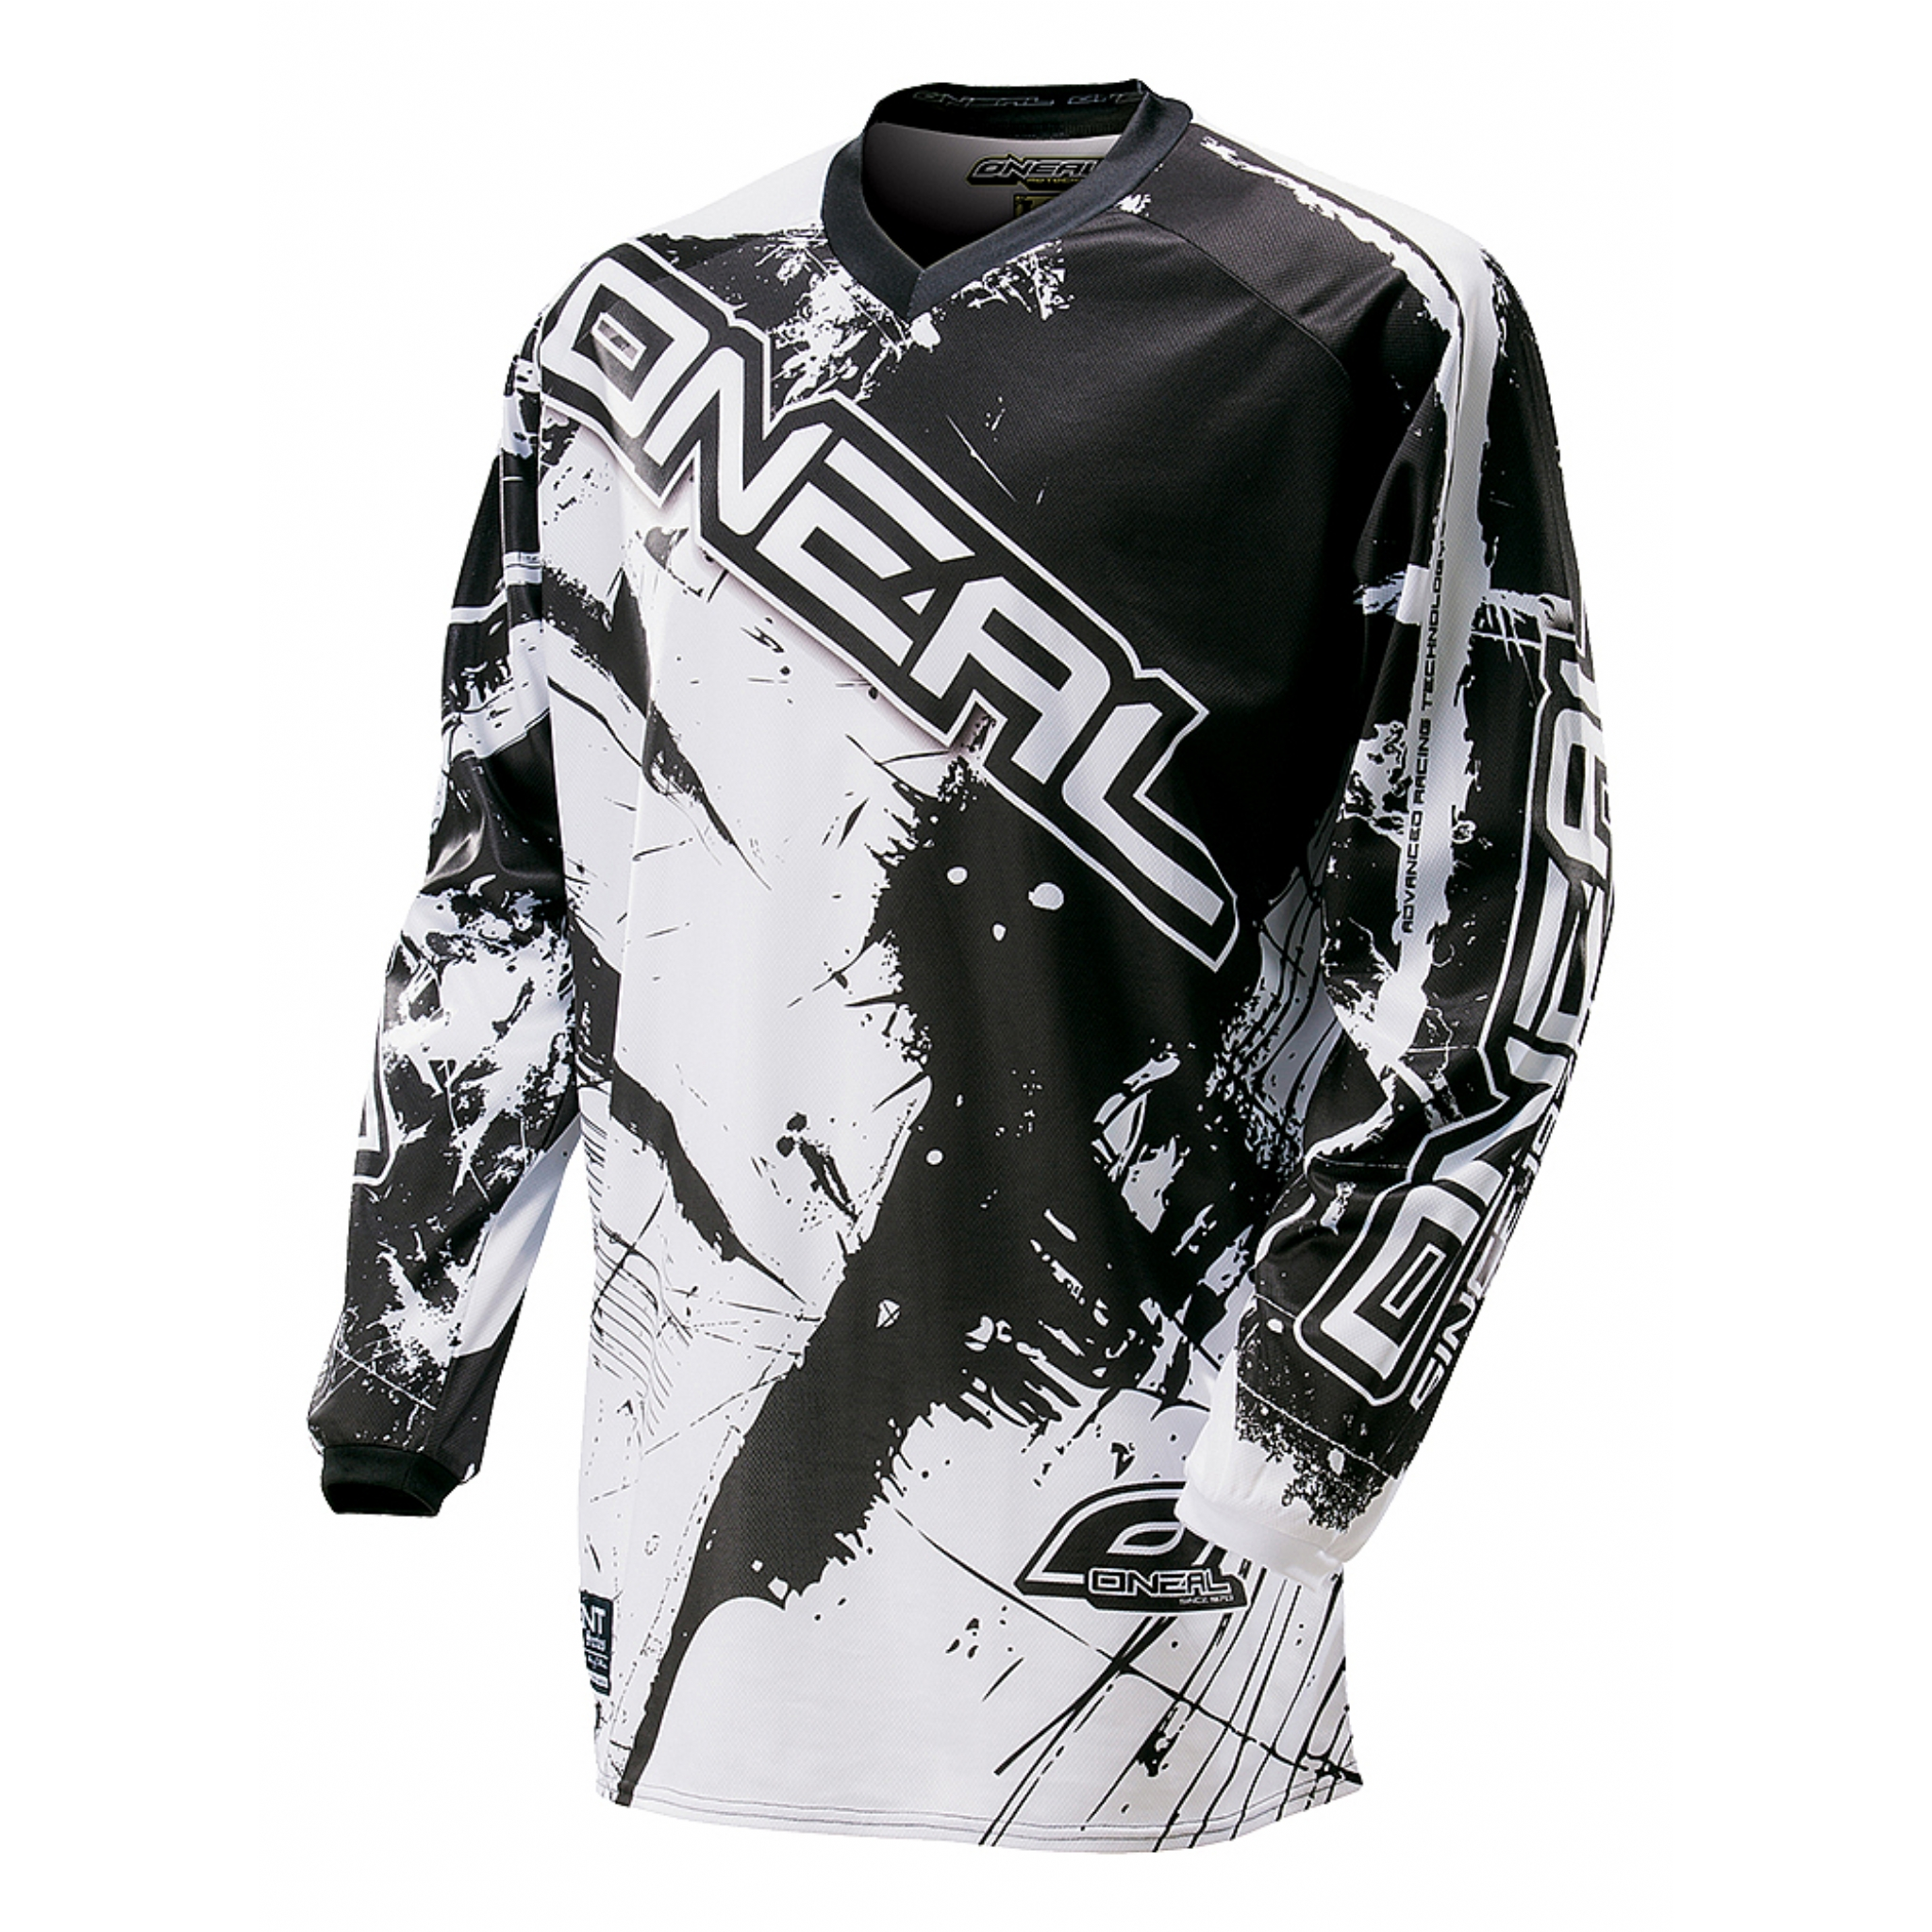 Джерси Oneal Element Shocker black/white XL, 0024S-615